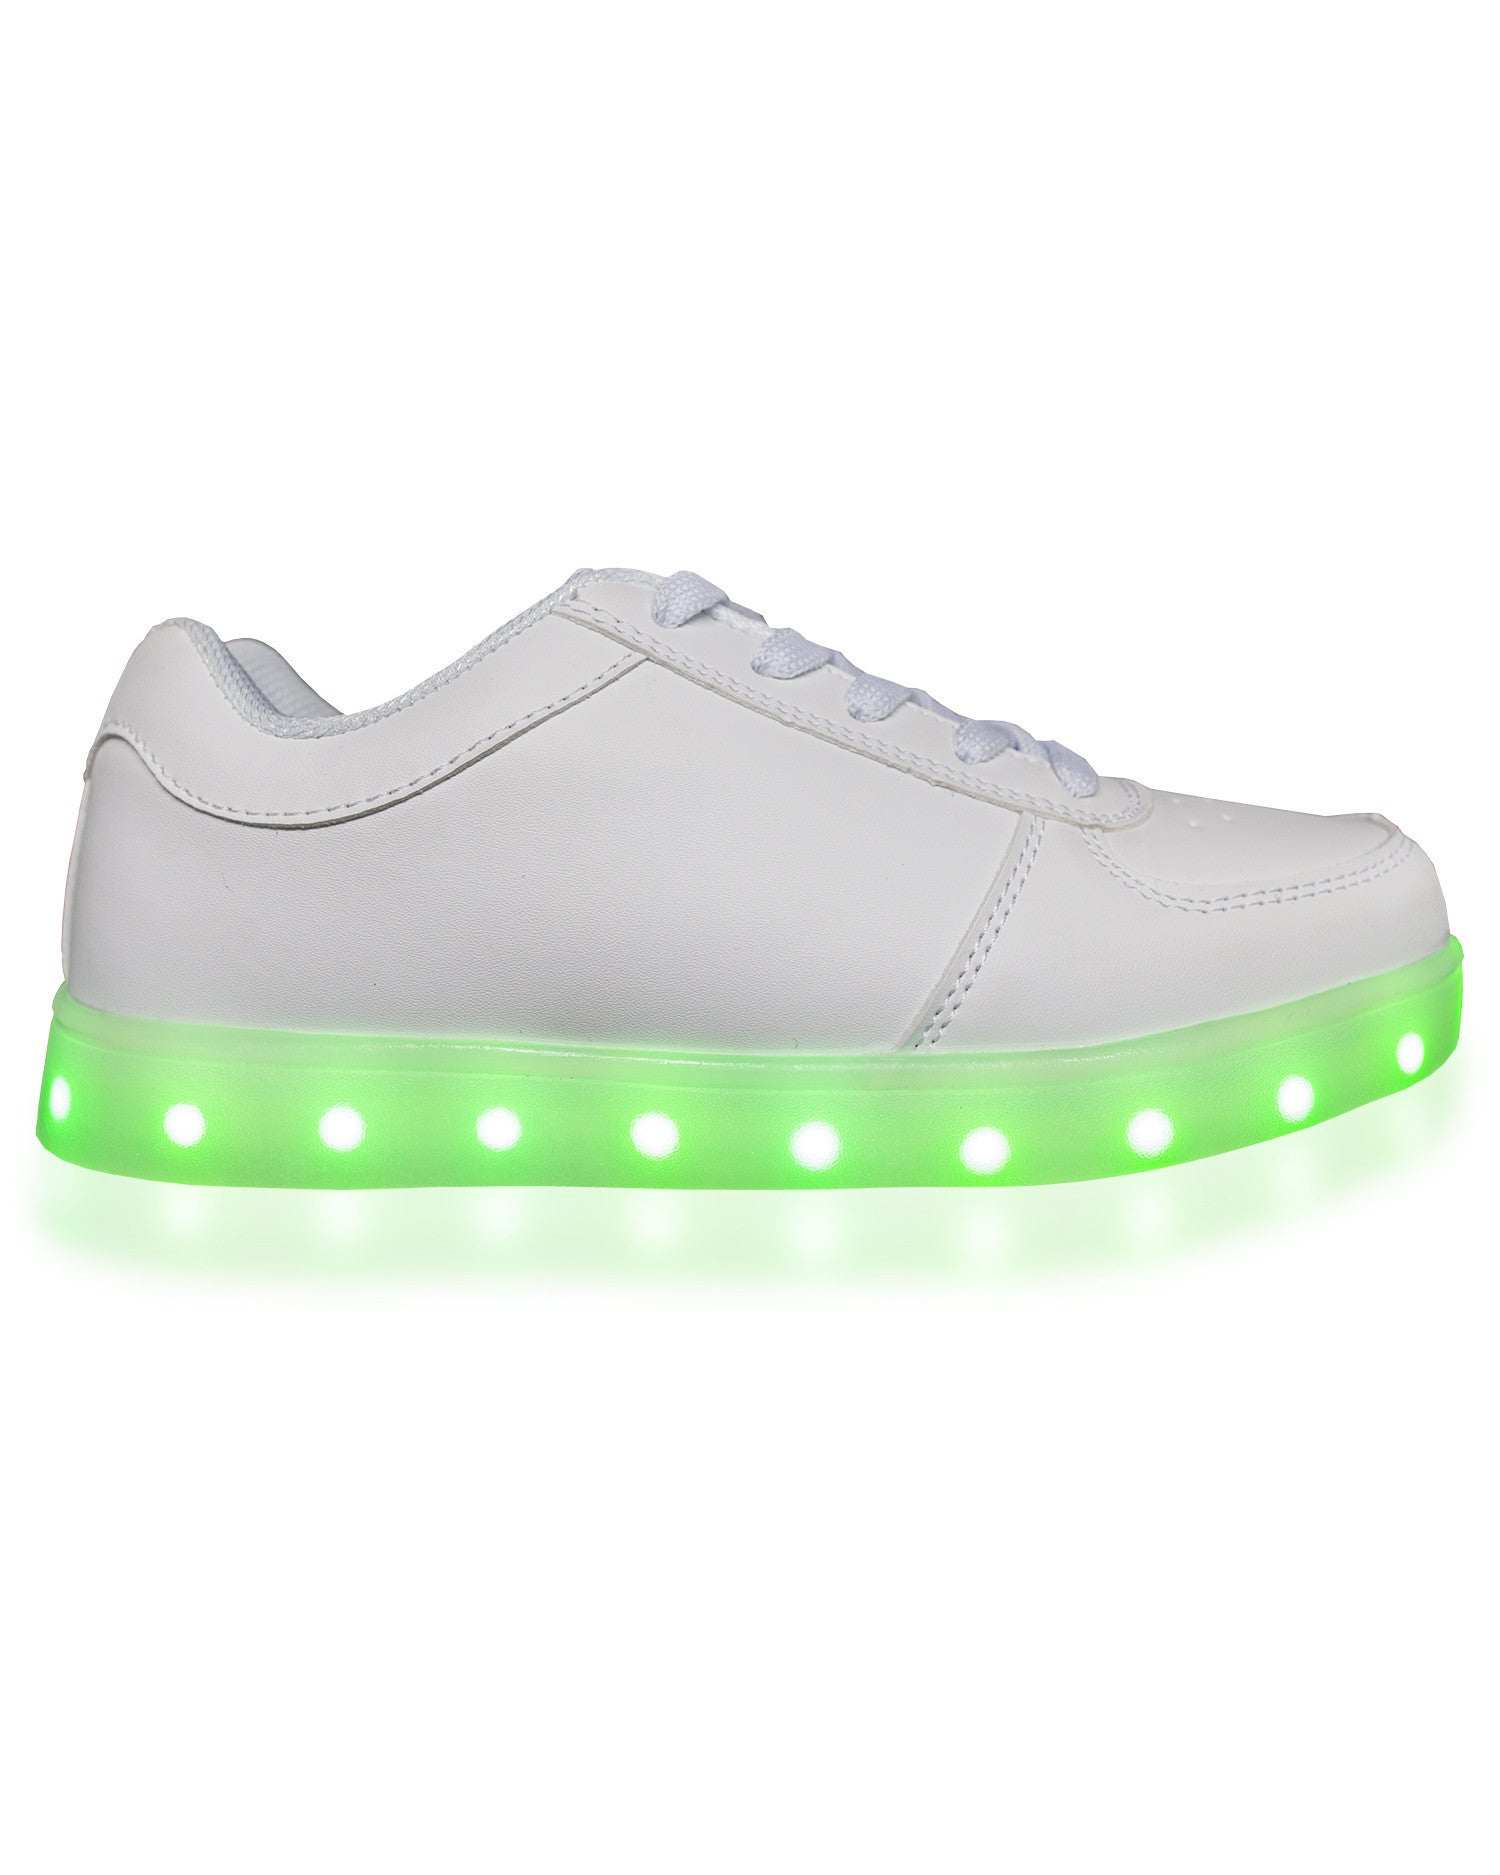 LED Shoes - All Black - Electric Styles | World's Number 1 Light Up Shoe Store - {product_type}} -  - 9